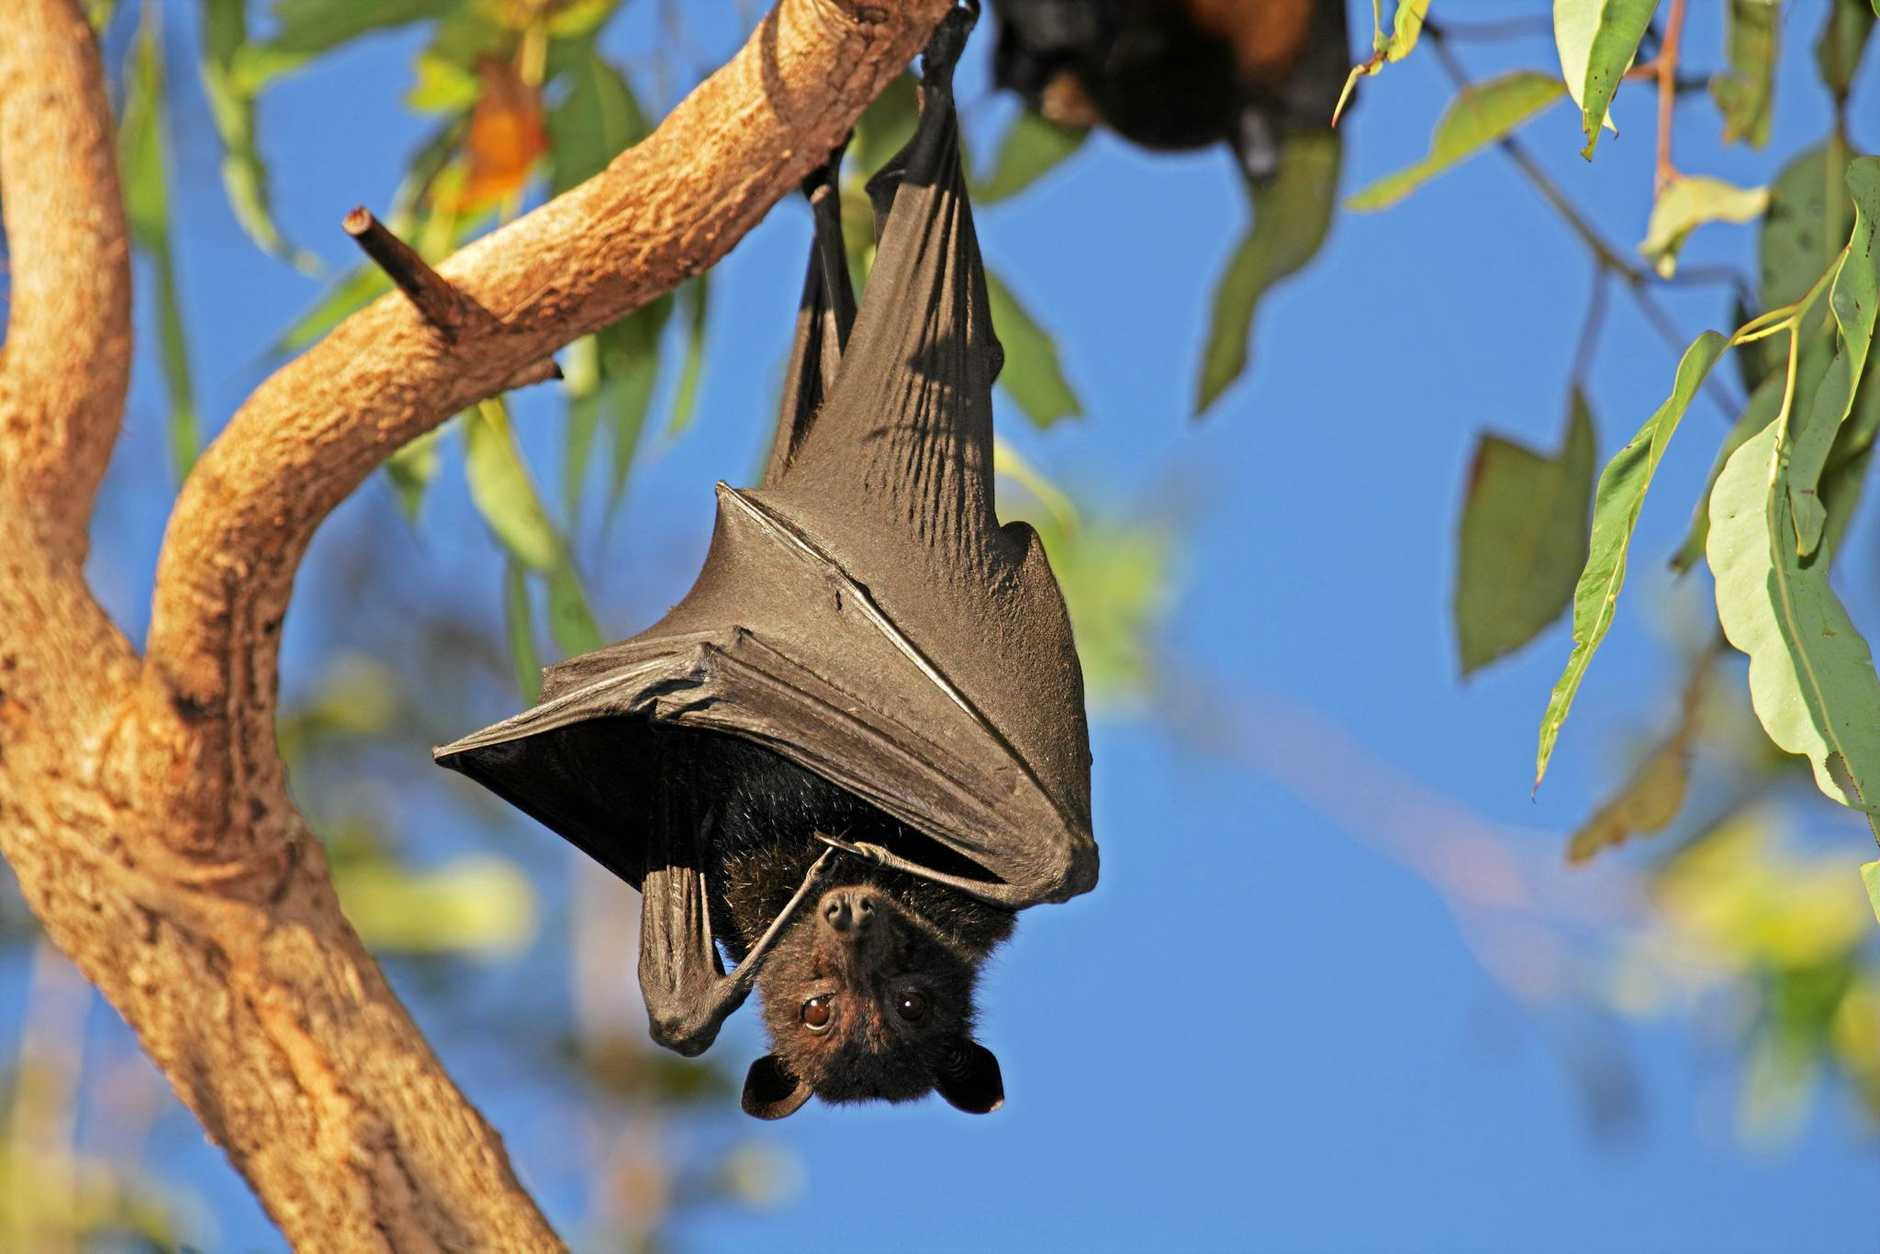 Dispersal of flying foxes in Duaringa will take place next week.